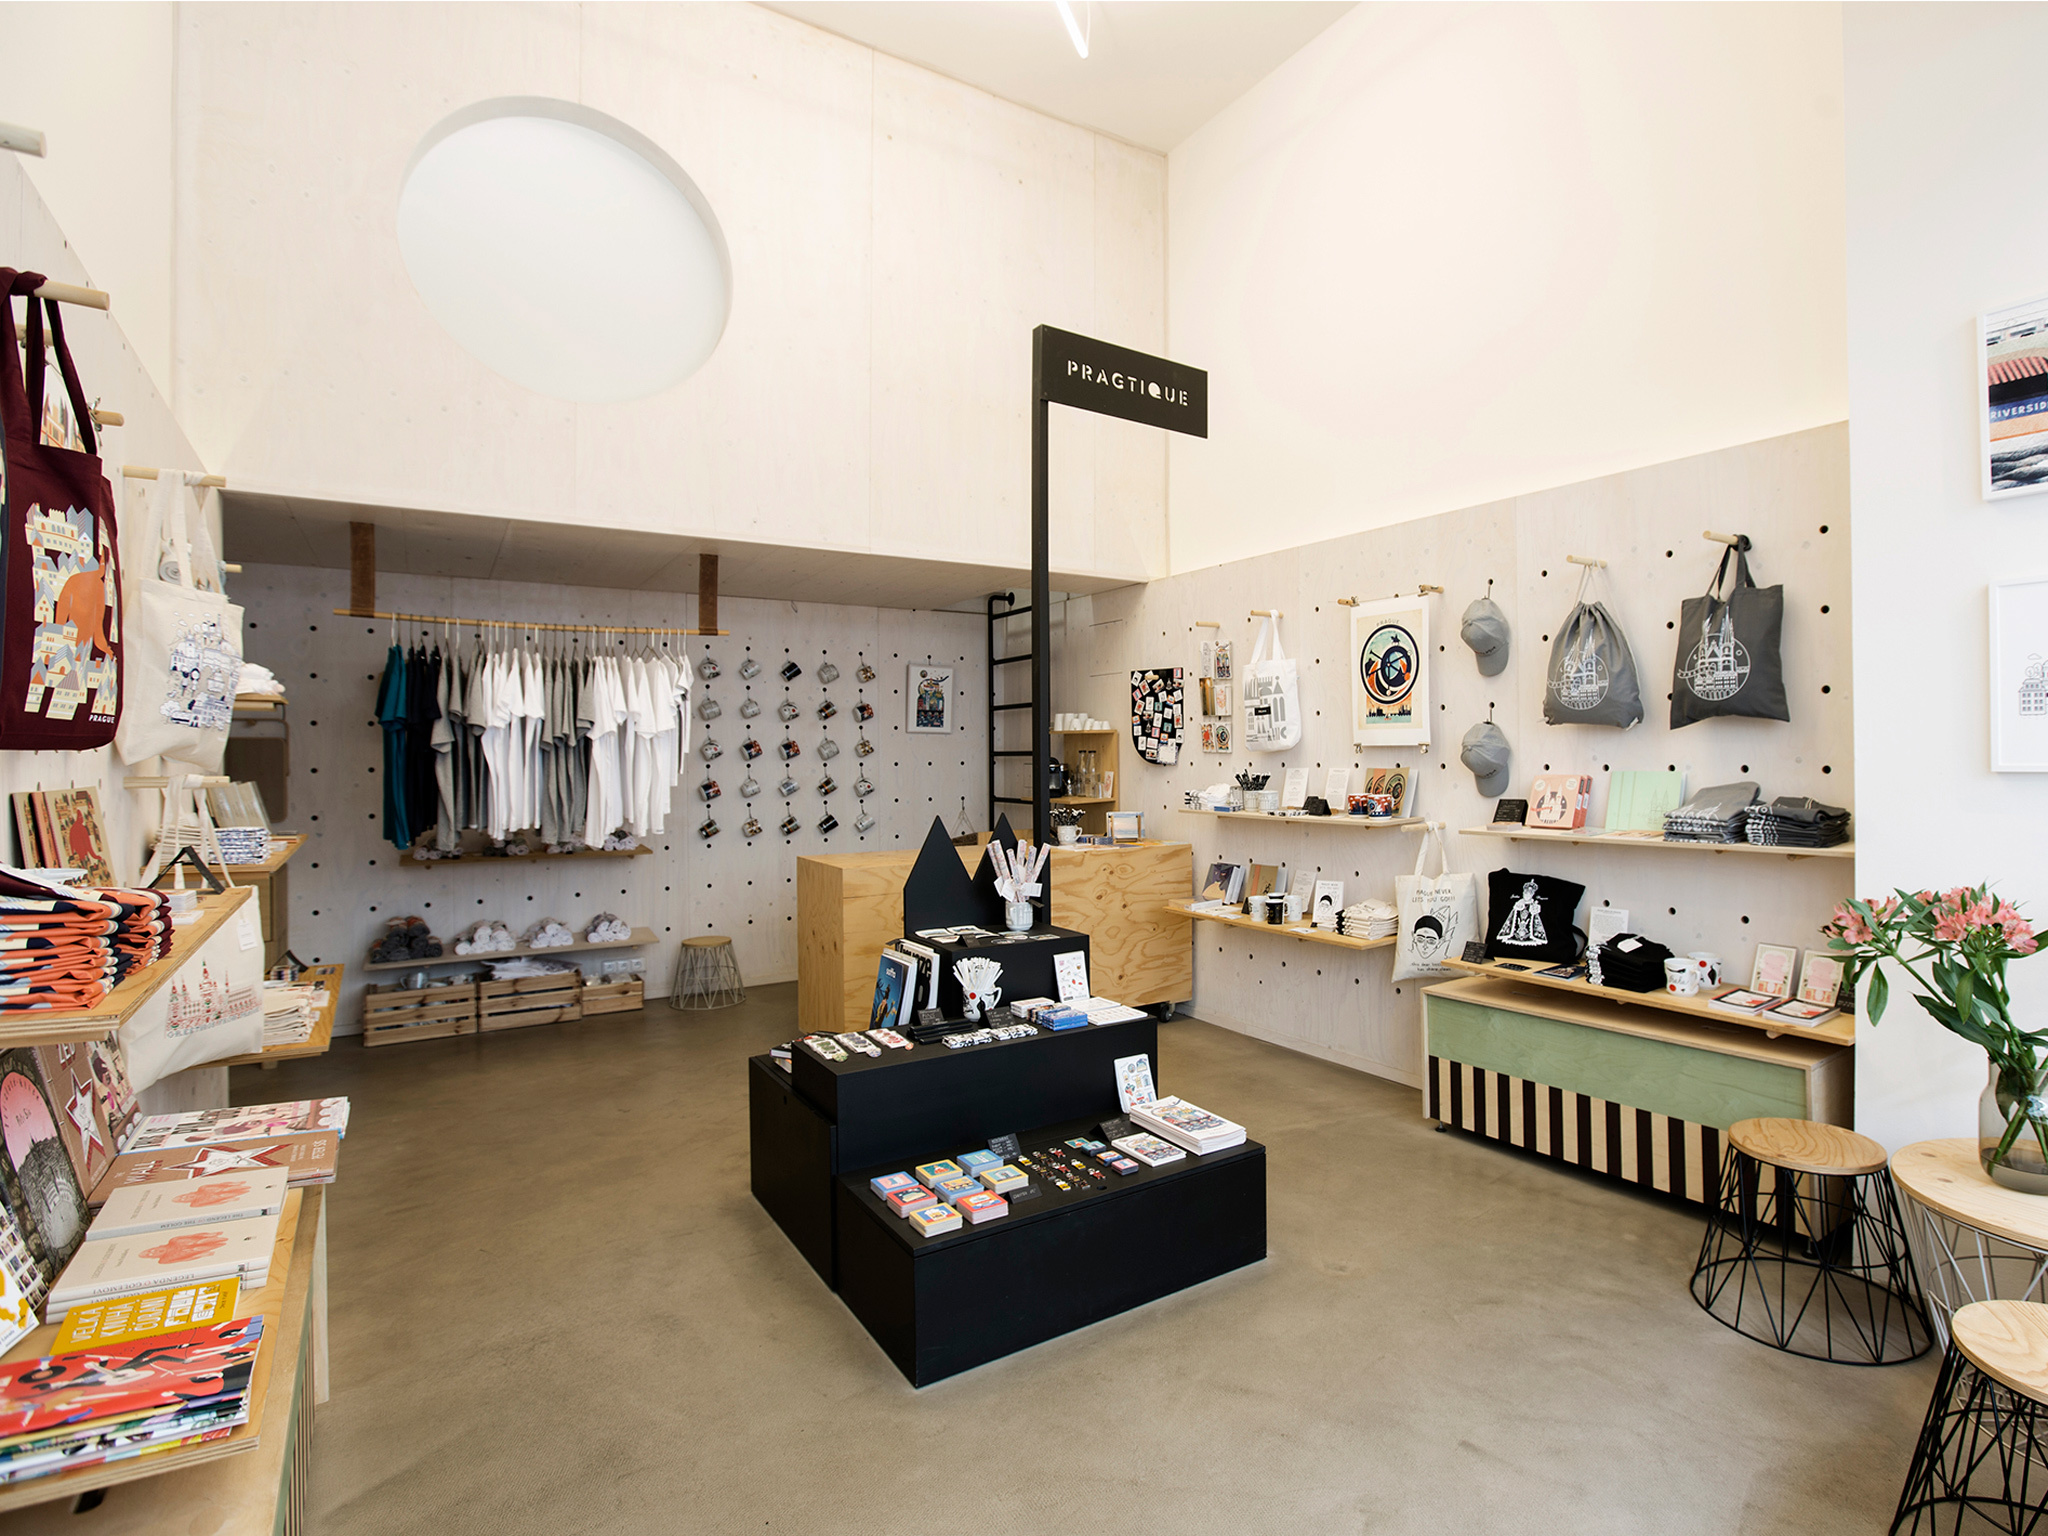 The interior of Pragtique shop in Prague